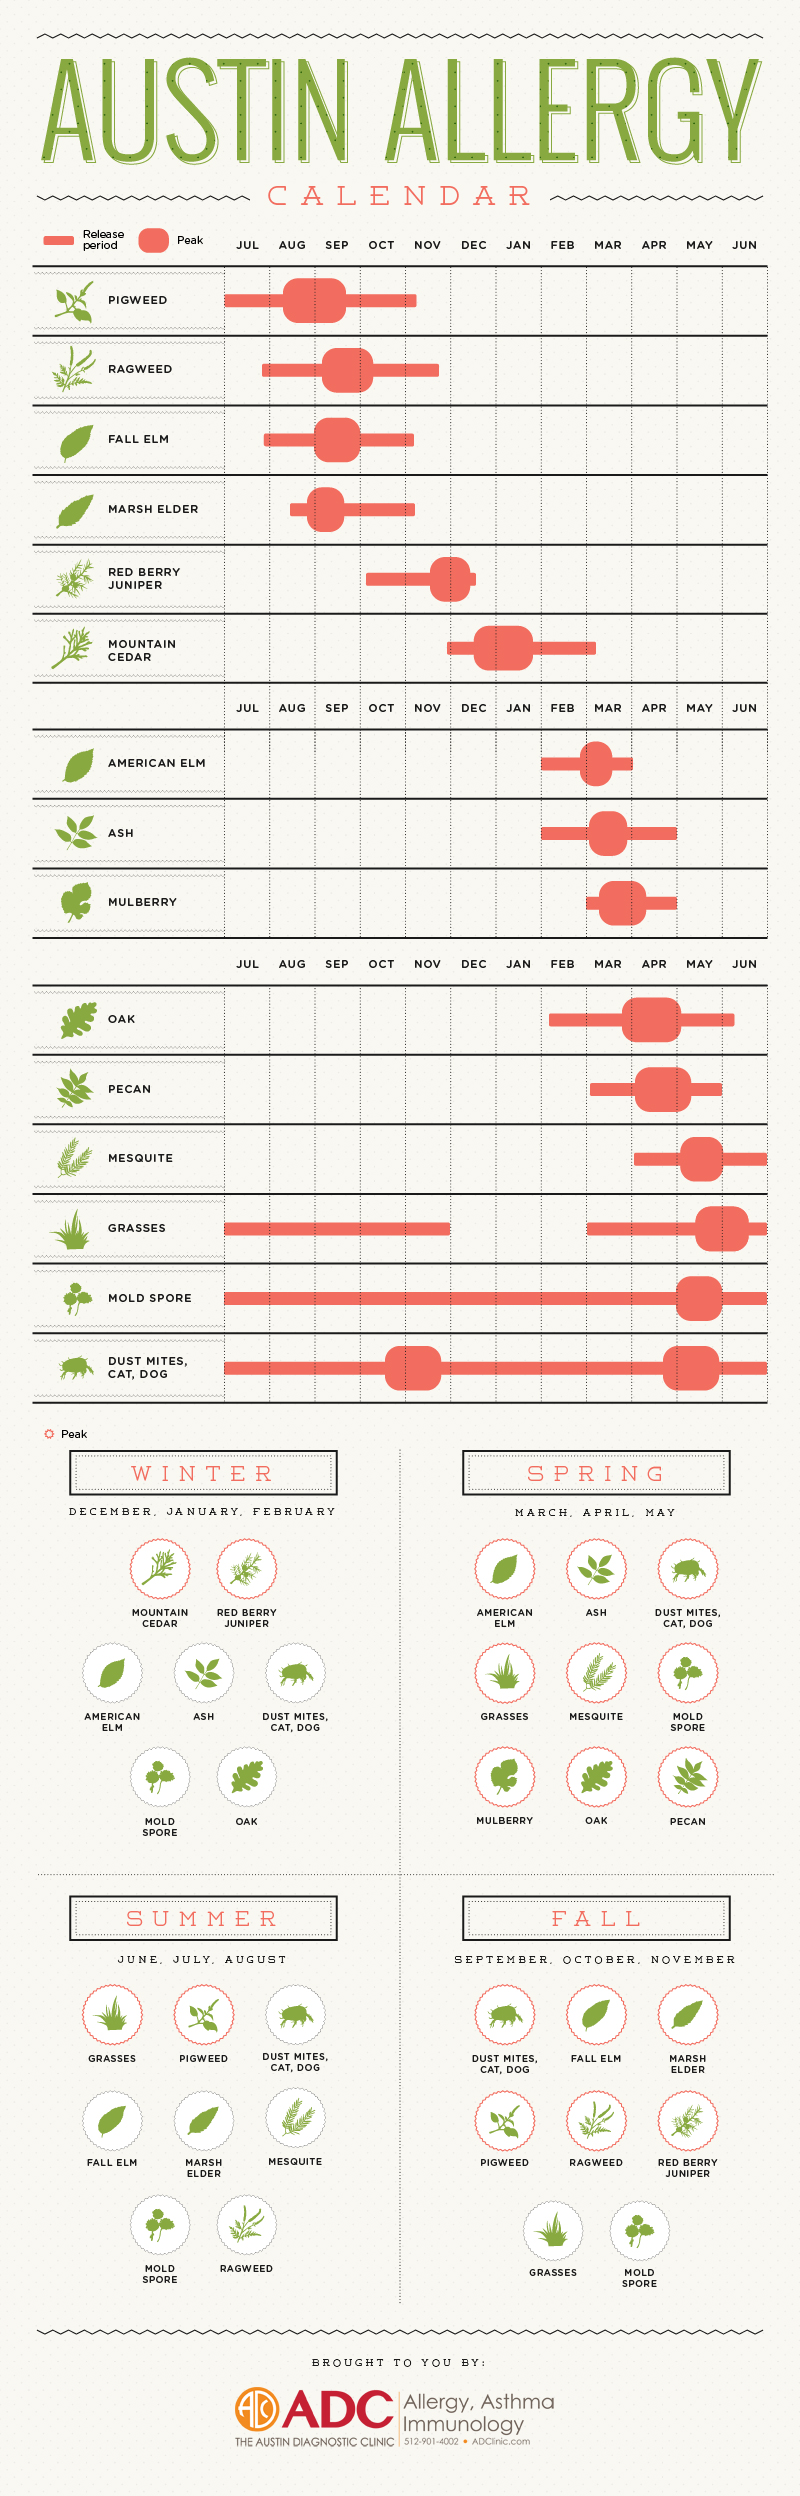 Want To Know Whats Causing Your Seasonal Allergies Check Out Our Austin Allergy Calendar